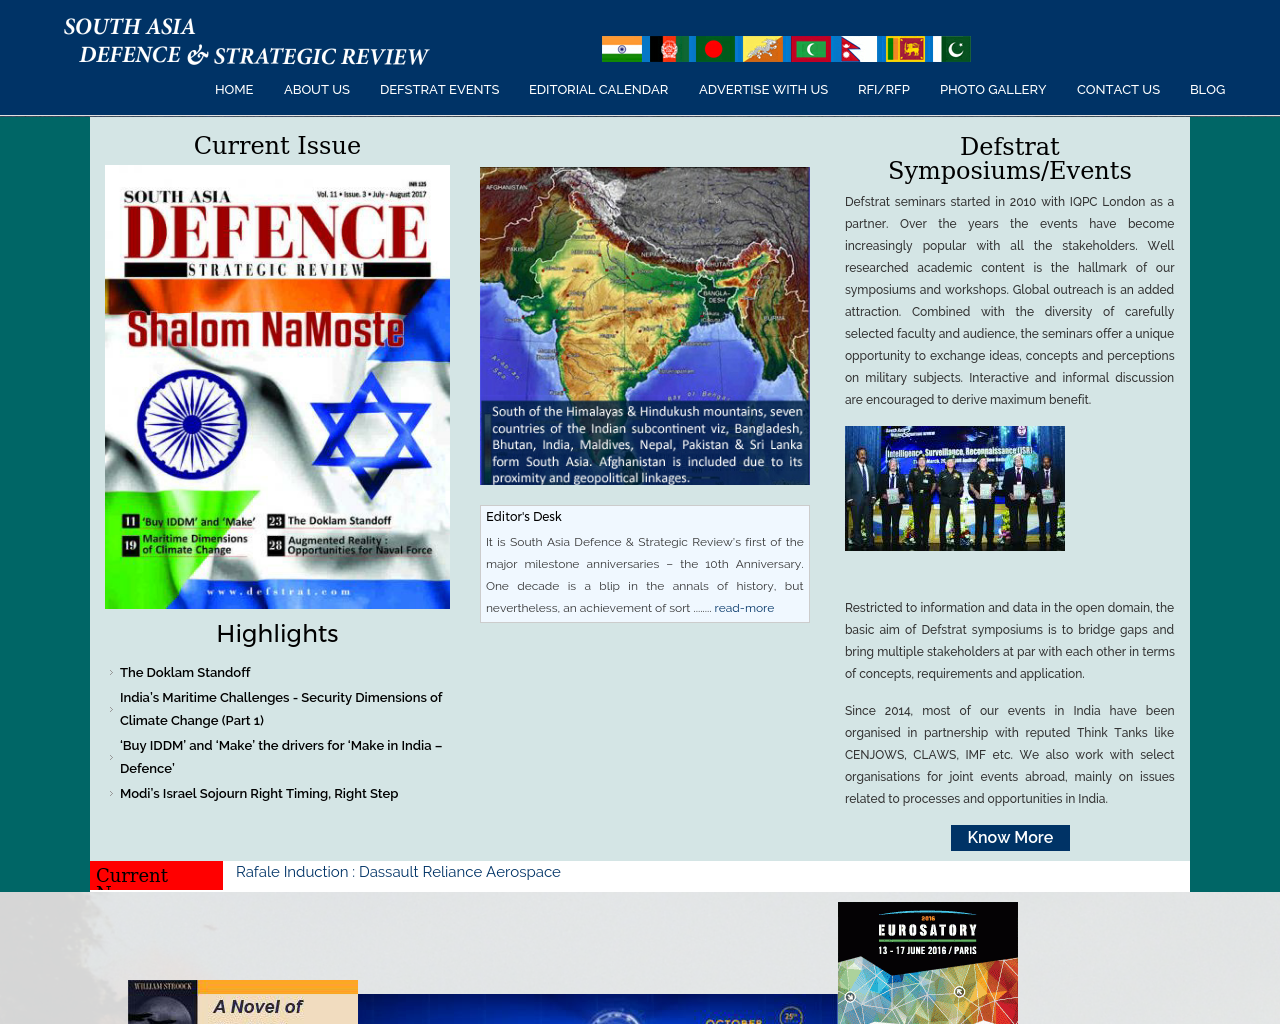 South-Asia-Defence-And-Strategic-Review-Magazine-Advertising-Reviews-Pricing